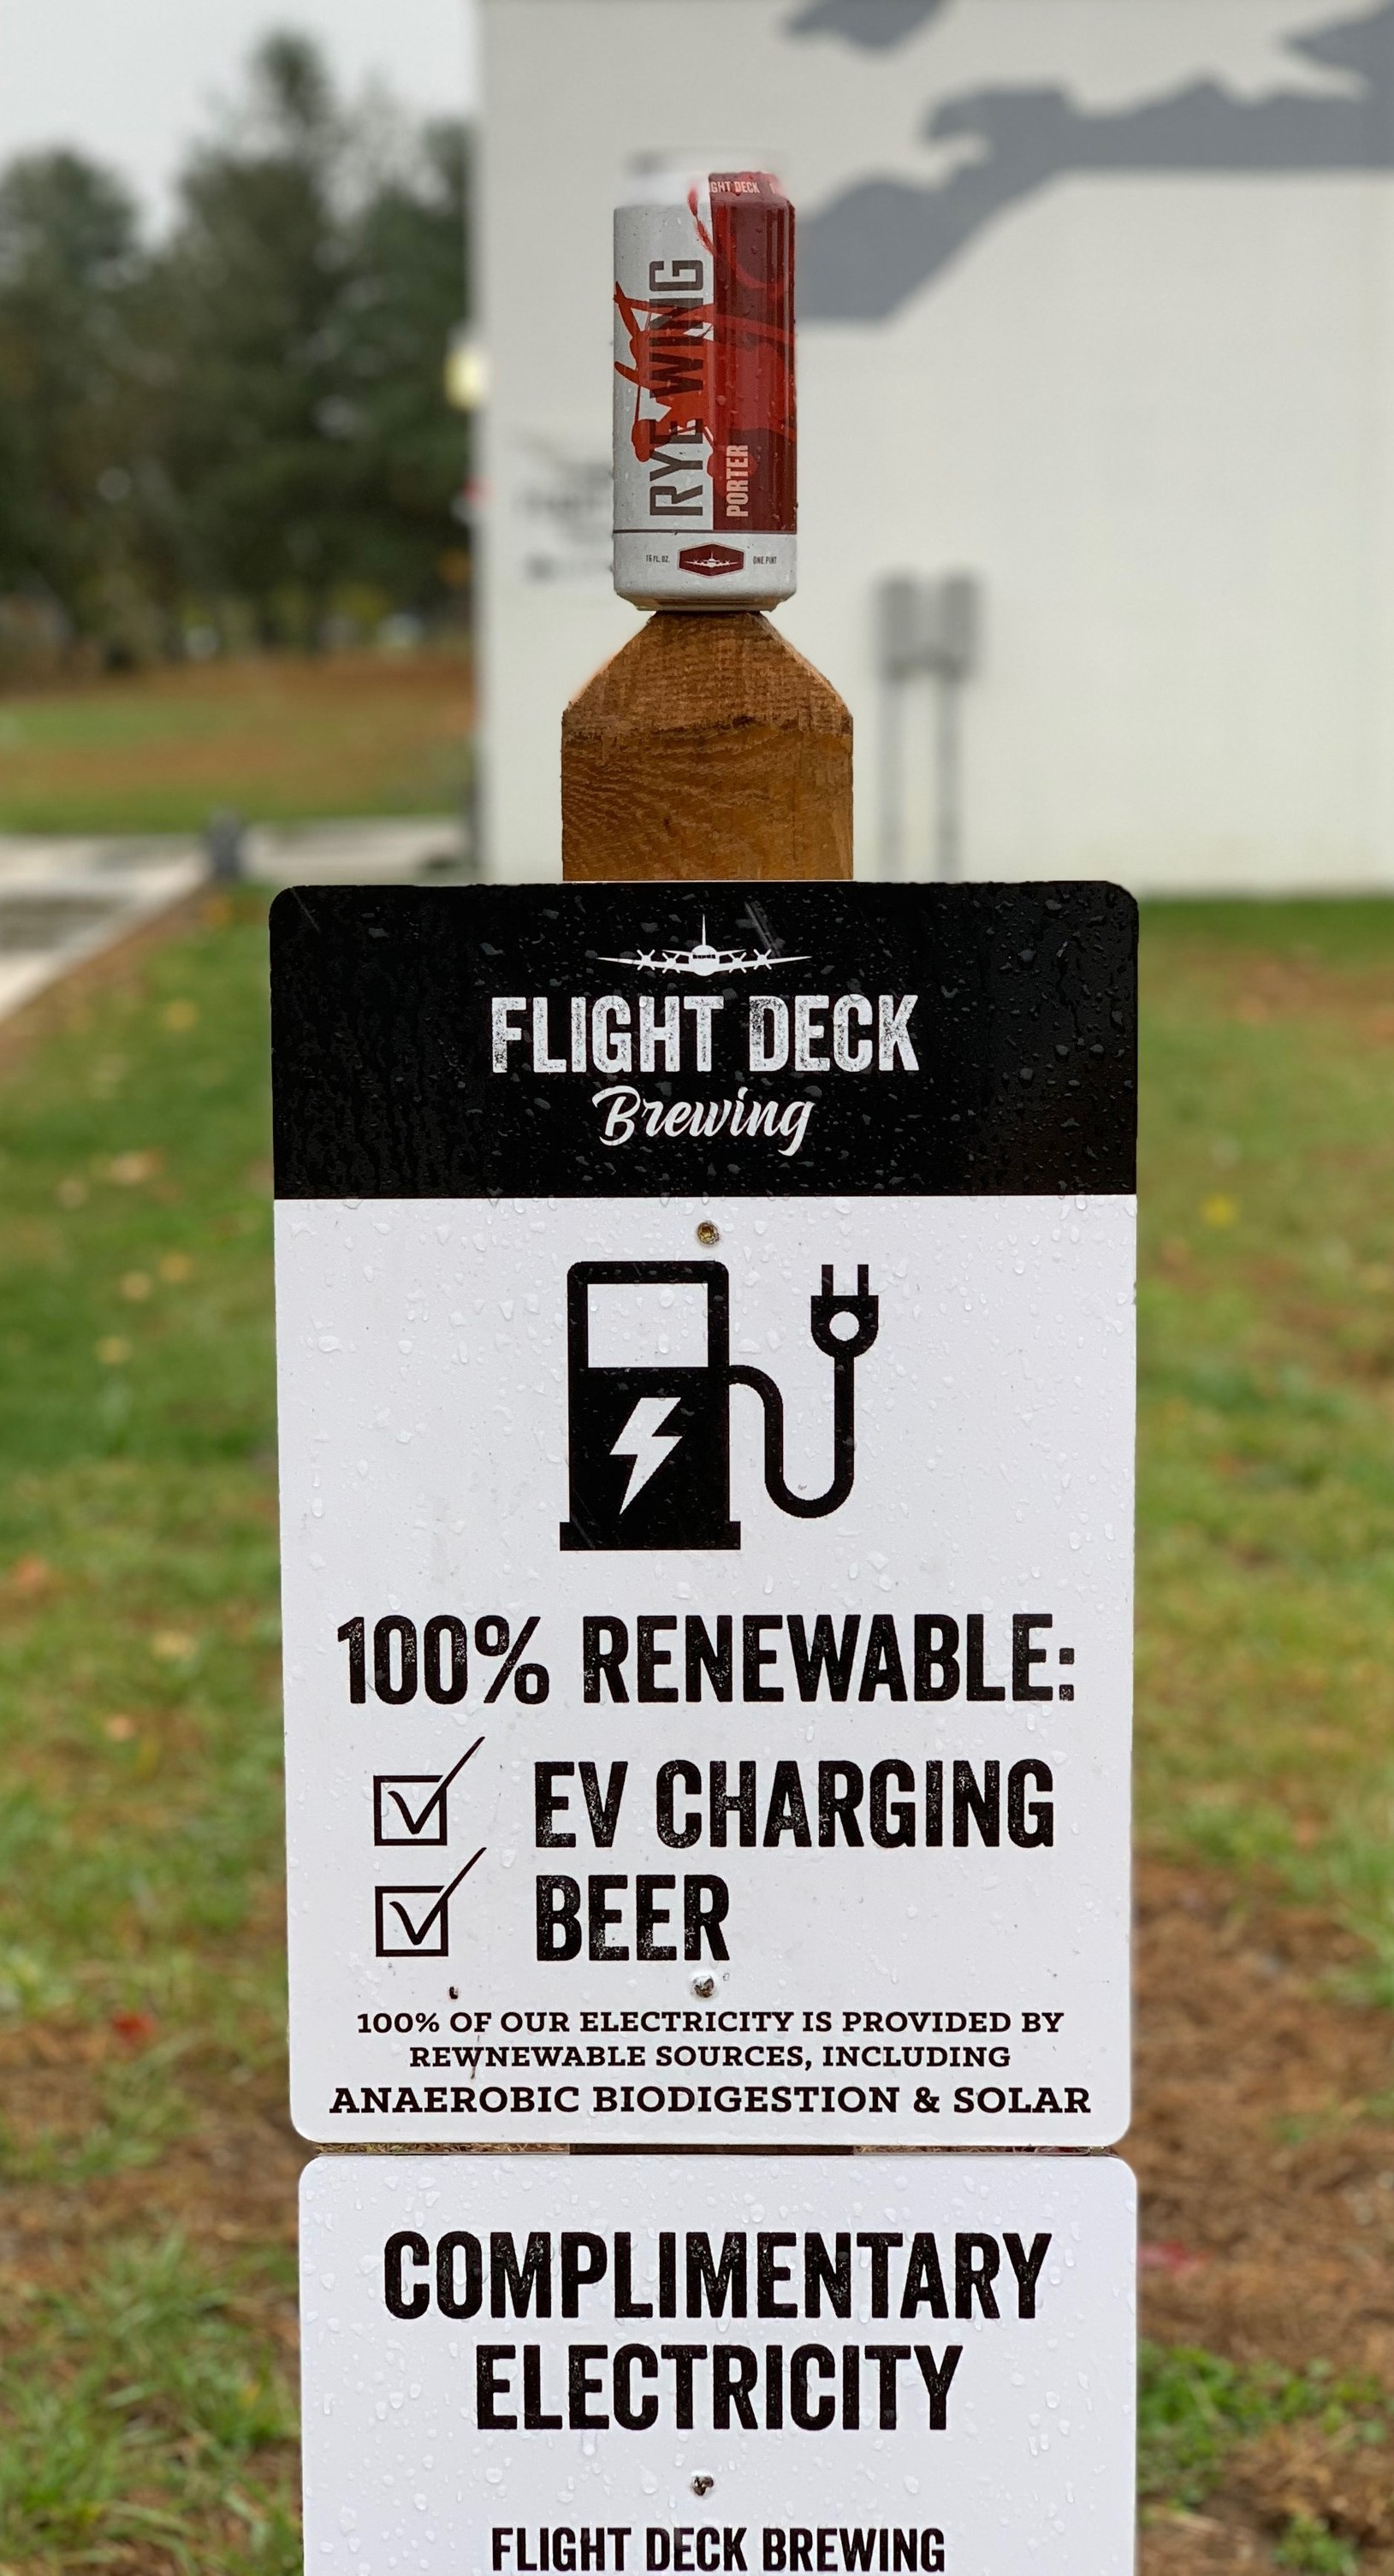 Flight Deck Brewing at the Brunswick Landing offers 4 EV chargers (three Tesla and one Level 2) that are free and open to the public. They are 100% powered by renewable energy, which is generated nearby by a large solar array and an anaerobic biodigestor. Any remaining electricity is grid-sourced and offset with renewable energy credits.